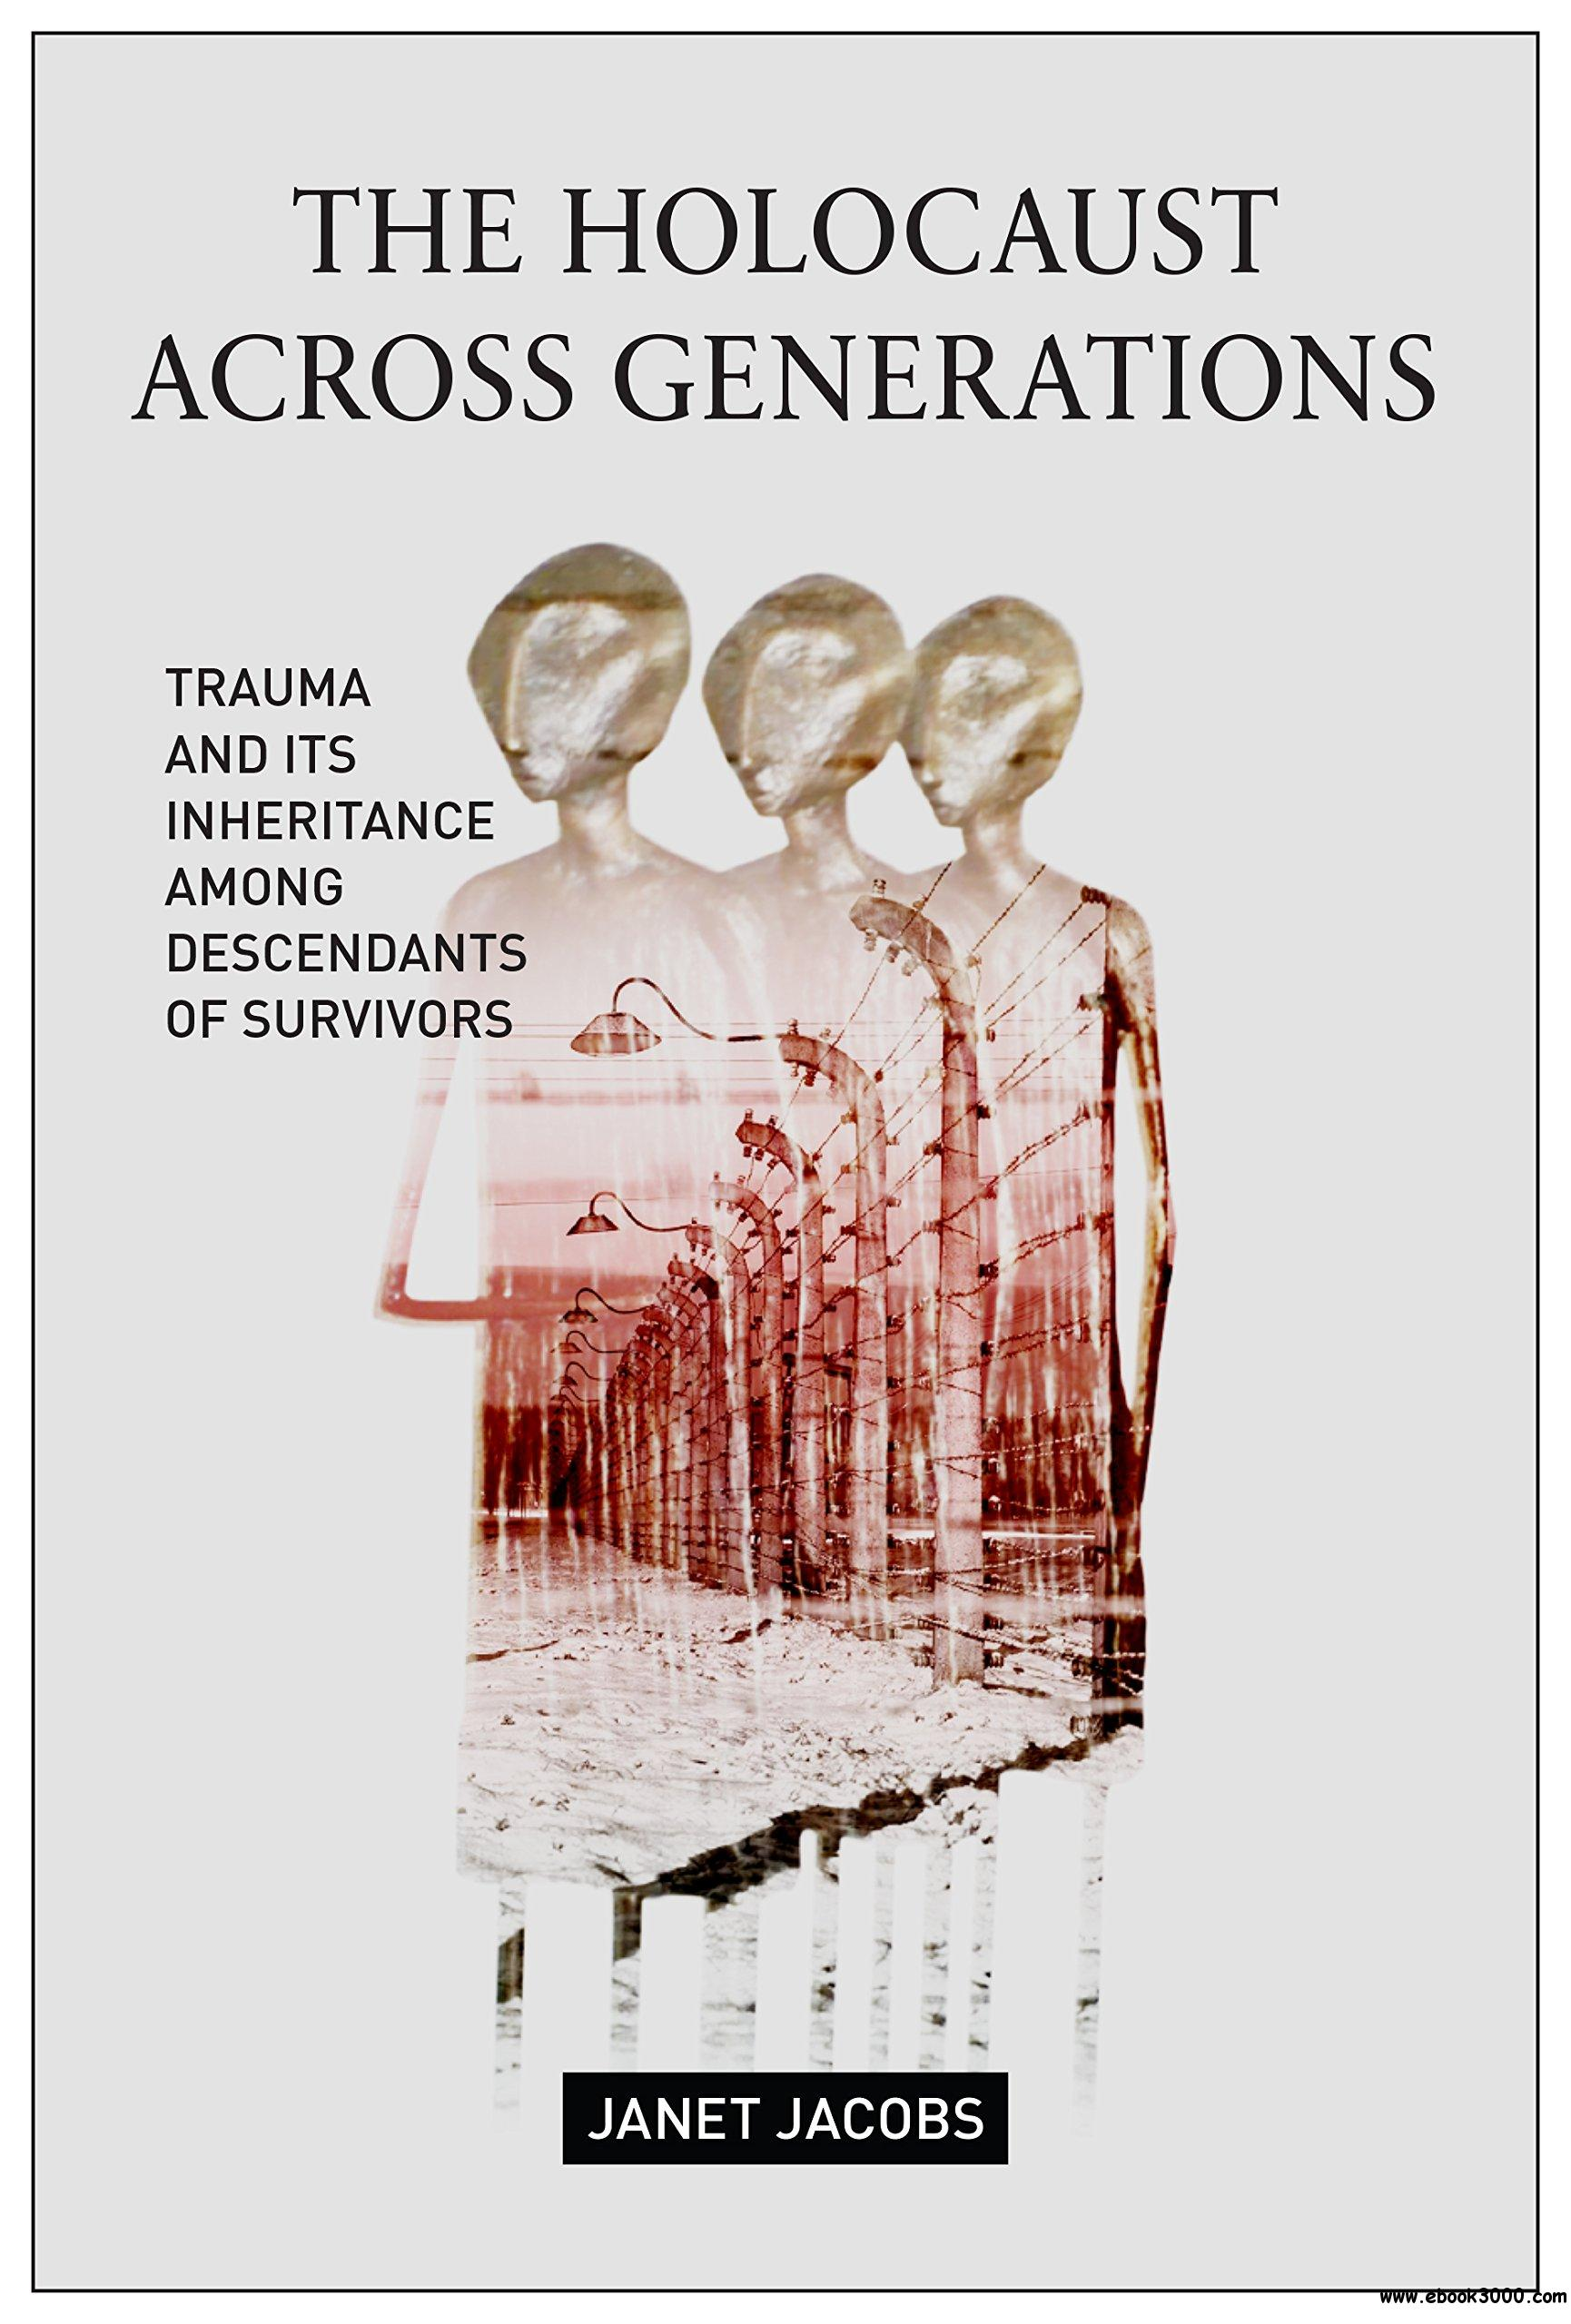 a general survey of the survivors of the holocaust Other researchers posit that the overwhelming suffering experienced by holocaust survivors has and anxiety — from the general survey: heavy.